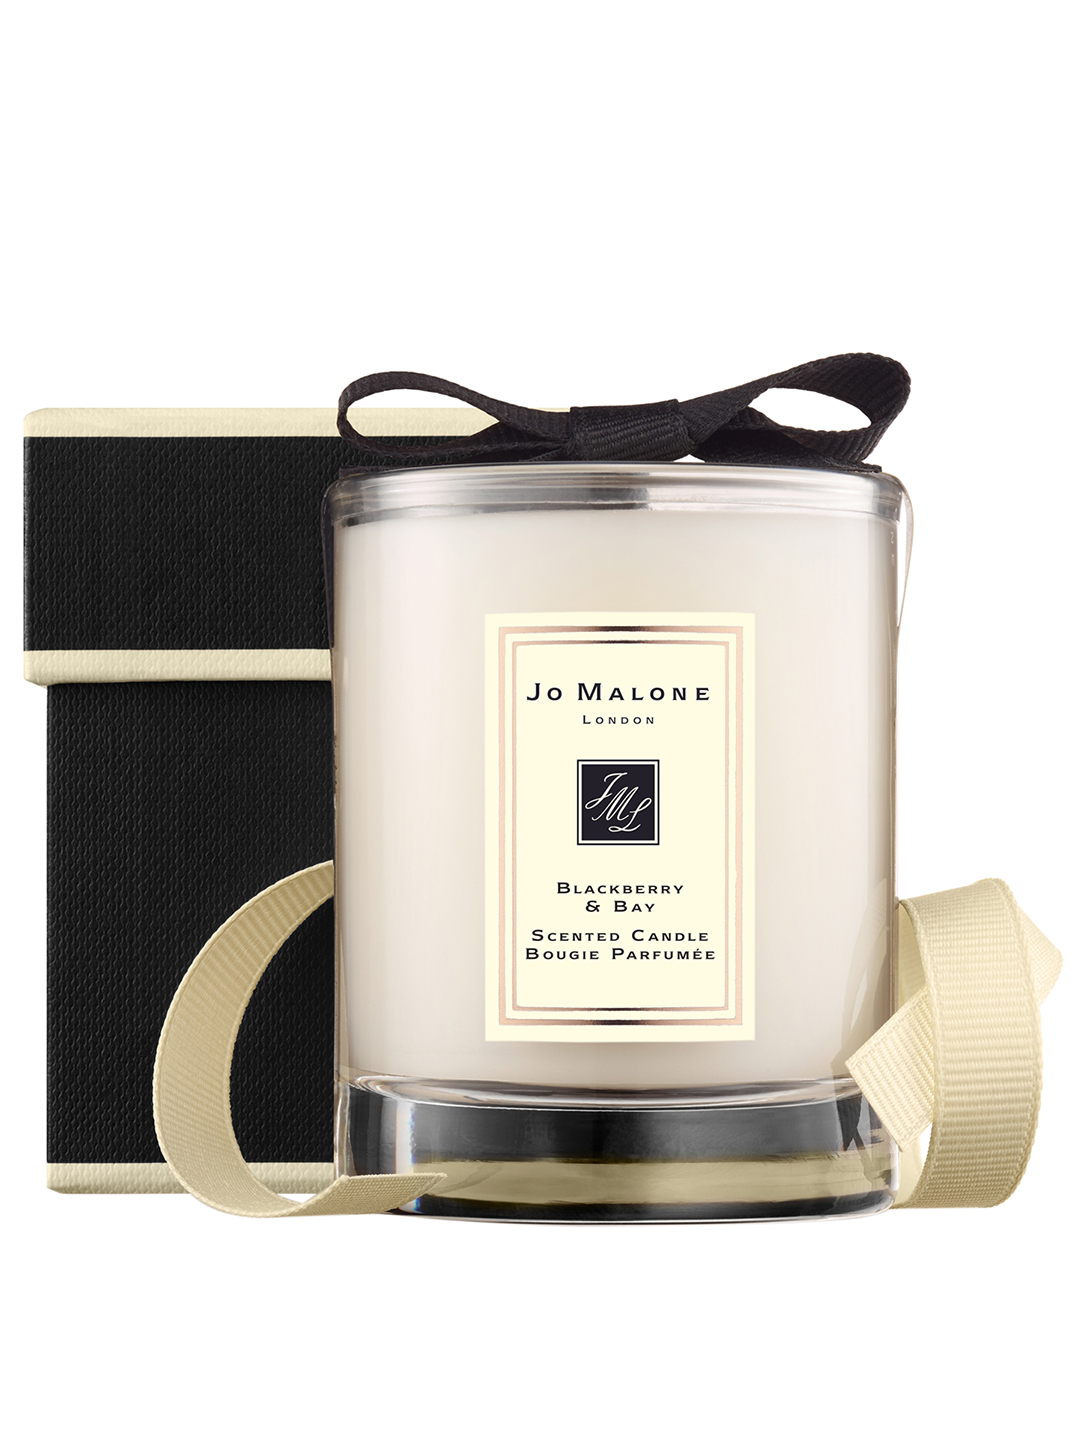 JO MALONE LONDON Blackberry & Bay Travel Candle Beauty